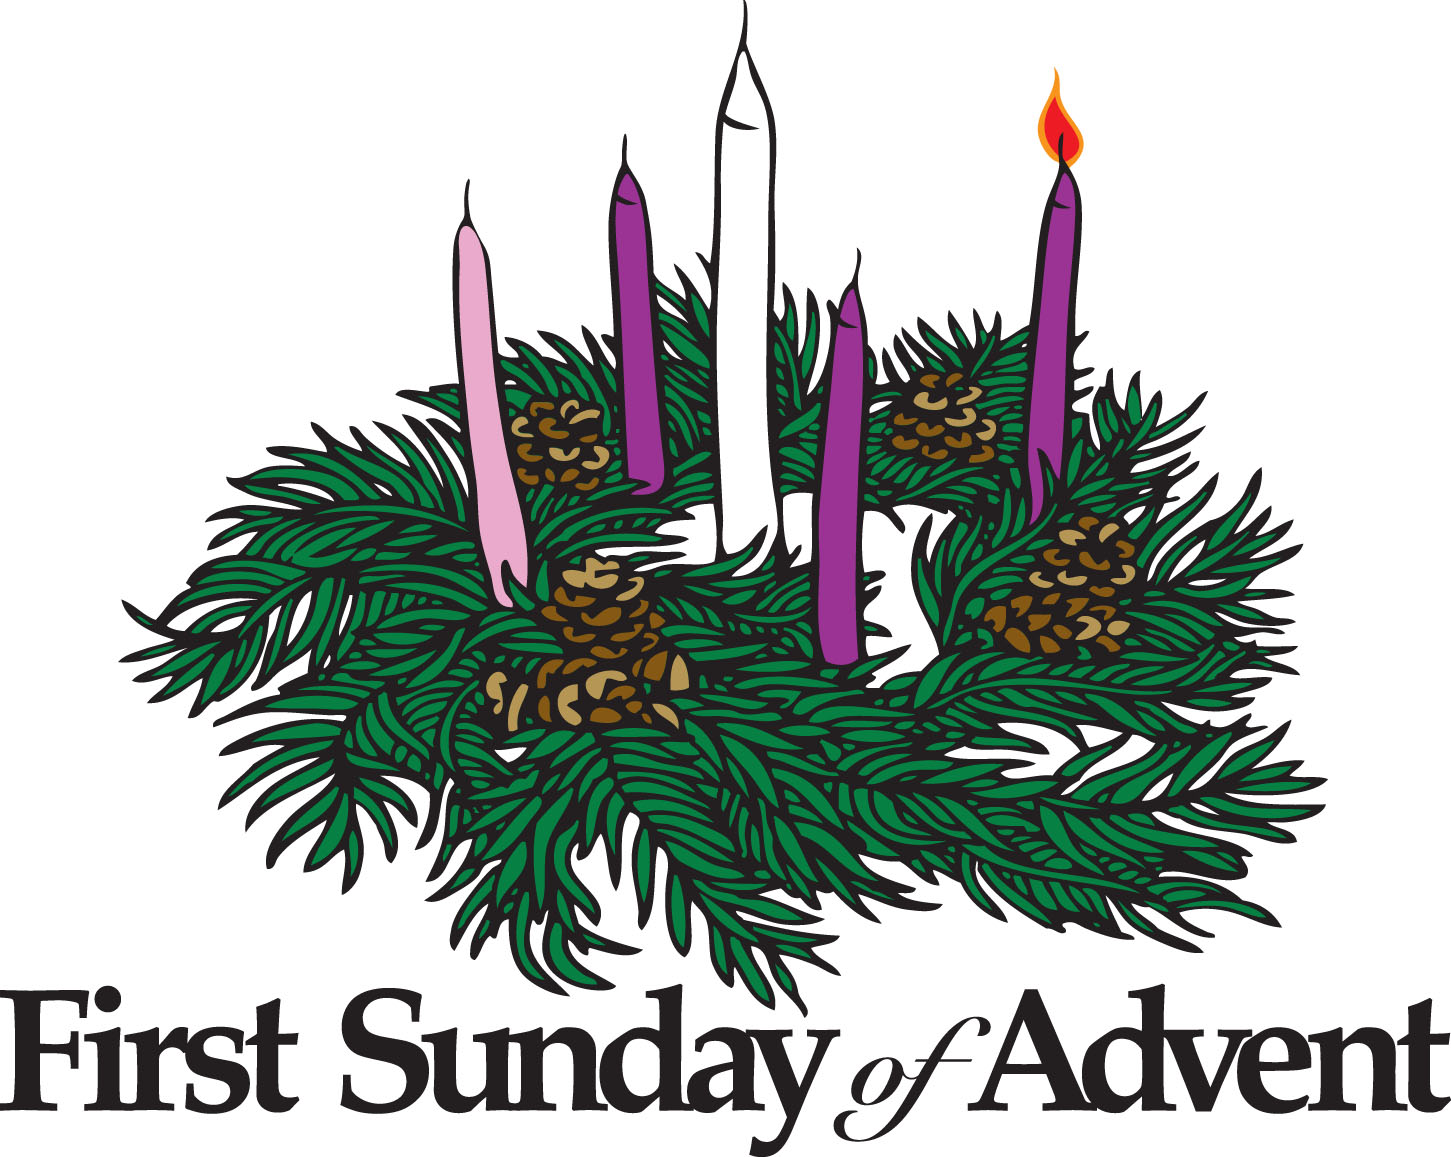 Third sunday in advent clipart svg library stock Free Advent Border Cliparts, Download Free Clip Art, Free Clip Art ... svg library stock